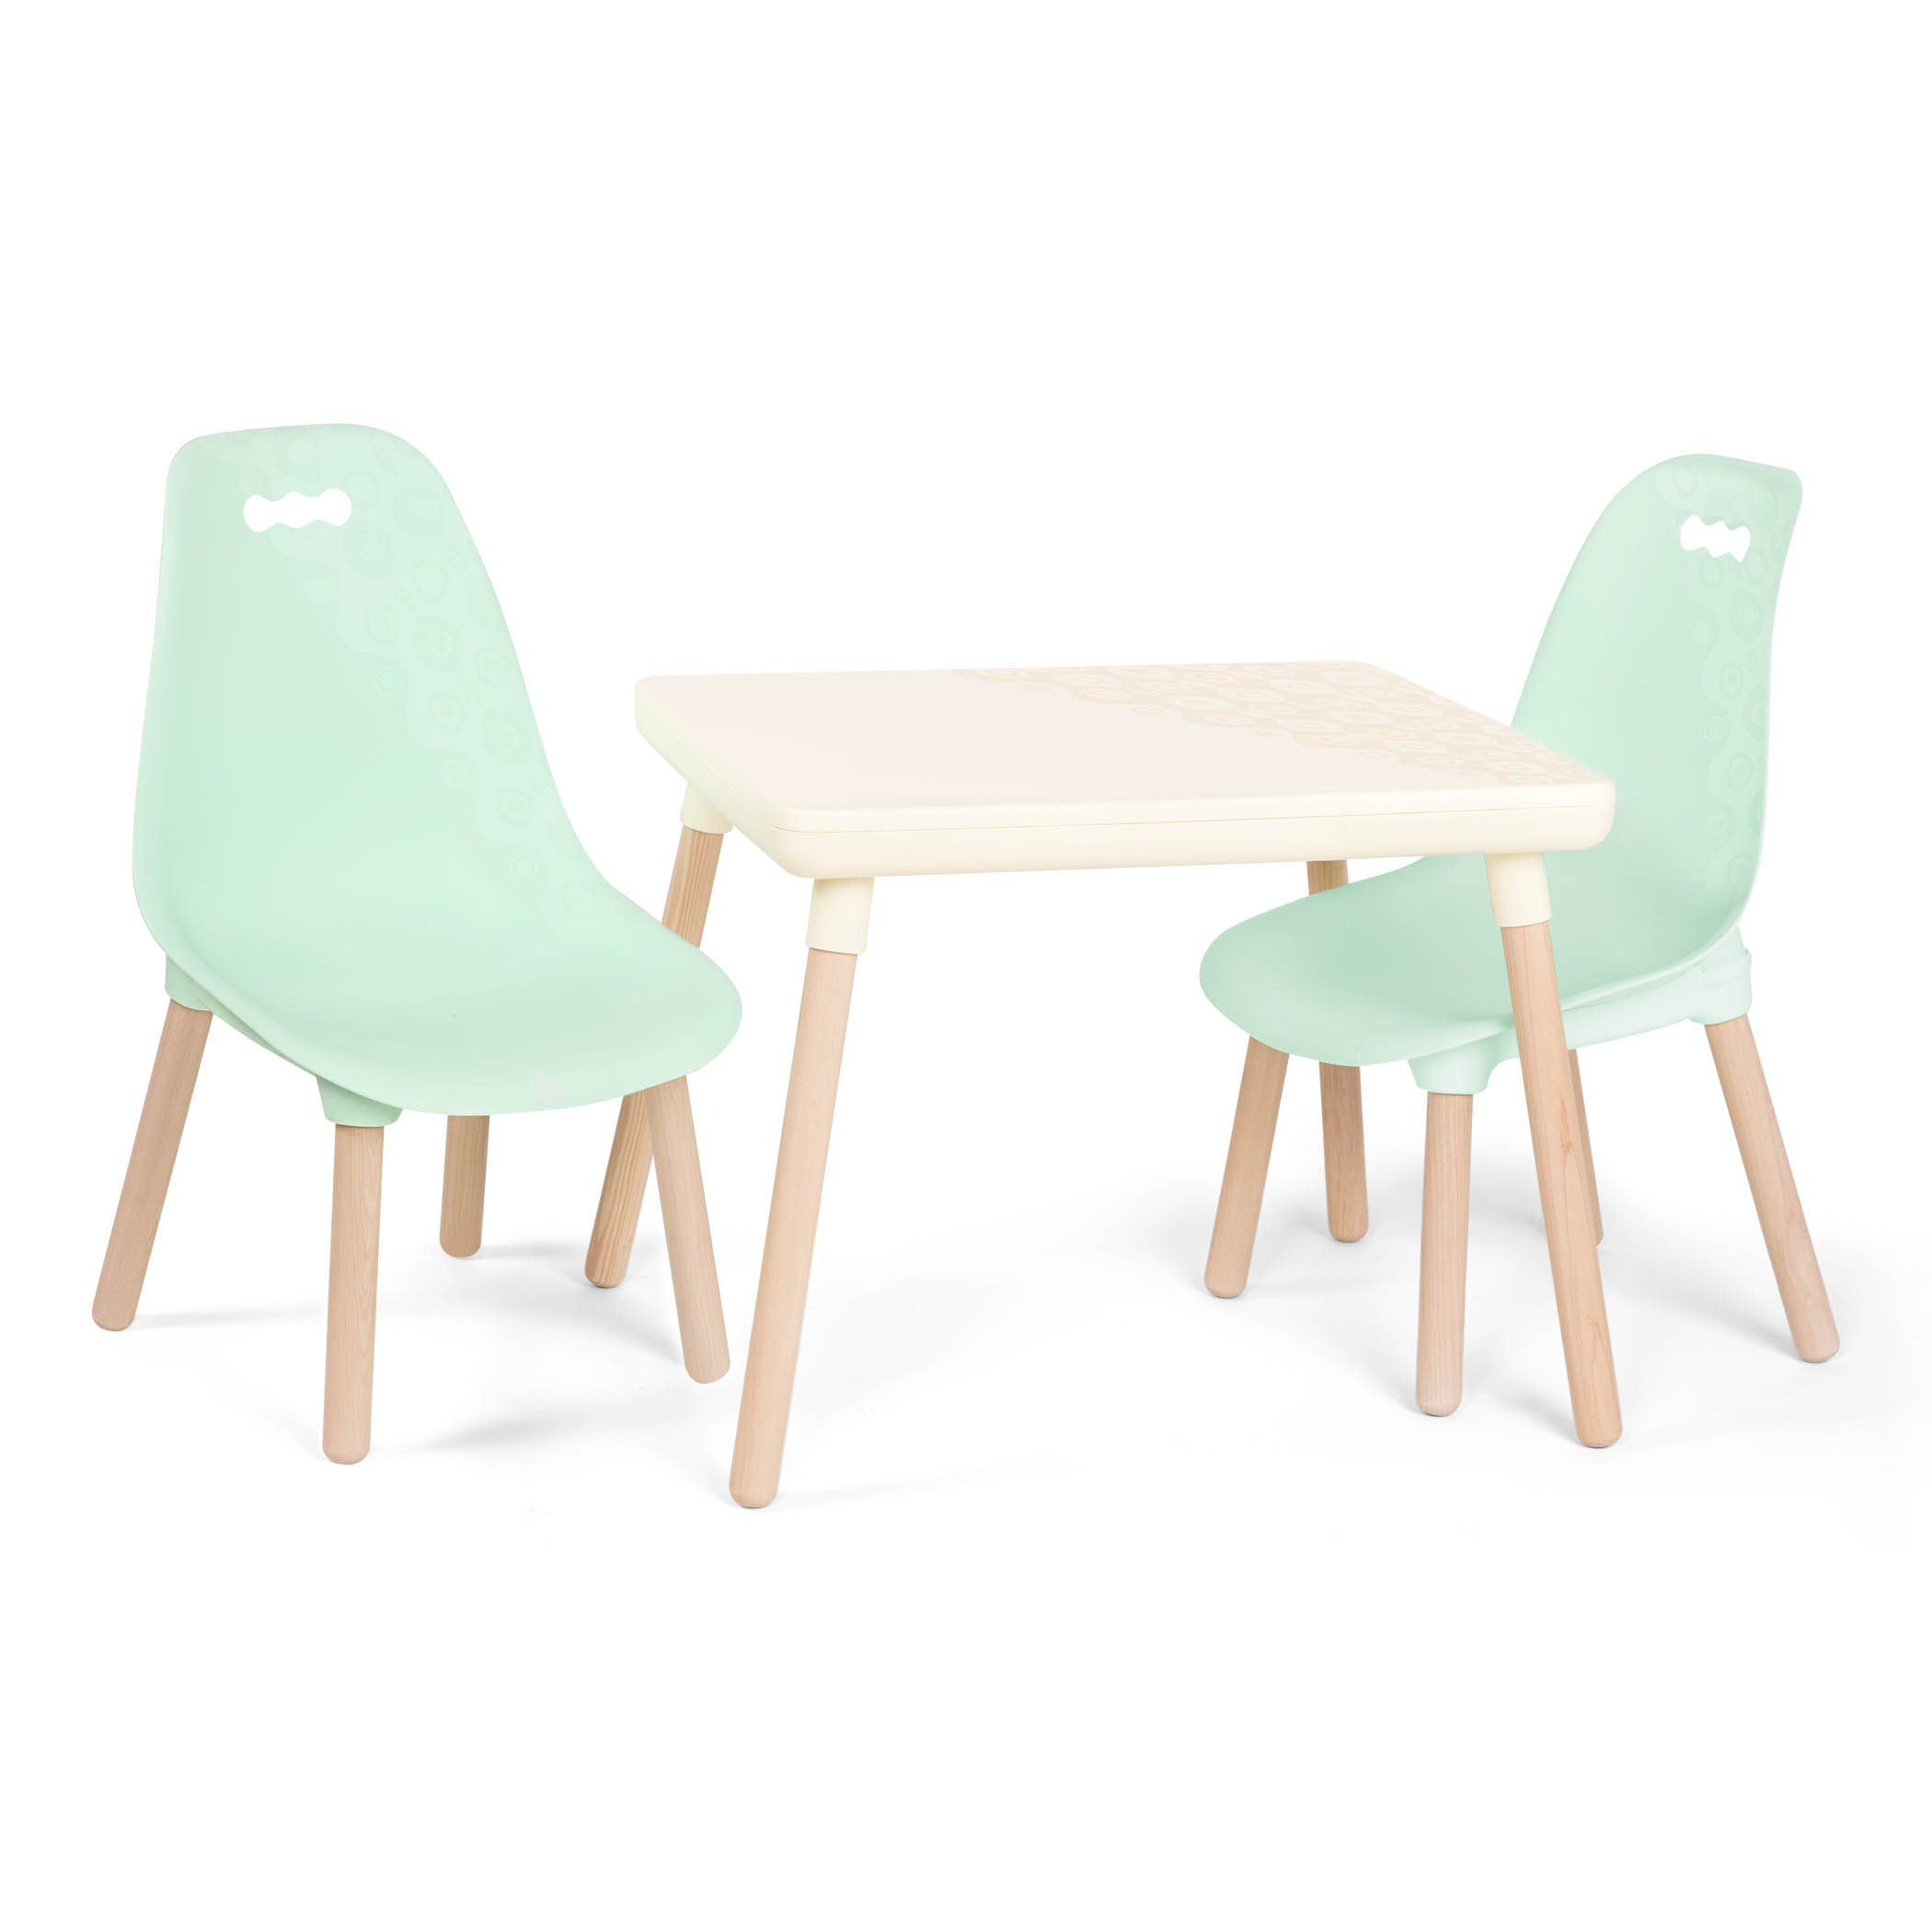 B. spaces by Battat – Kid-Century Modern: Trendy Kids Table and Chairs – 1 Table in Ivory and 2 Chairs in Mint – Kids Furniture Set for Toddlers – Ivory and Mint by B. spaces by Battat (Image #1)